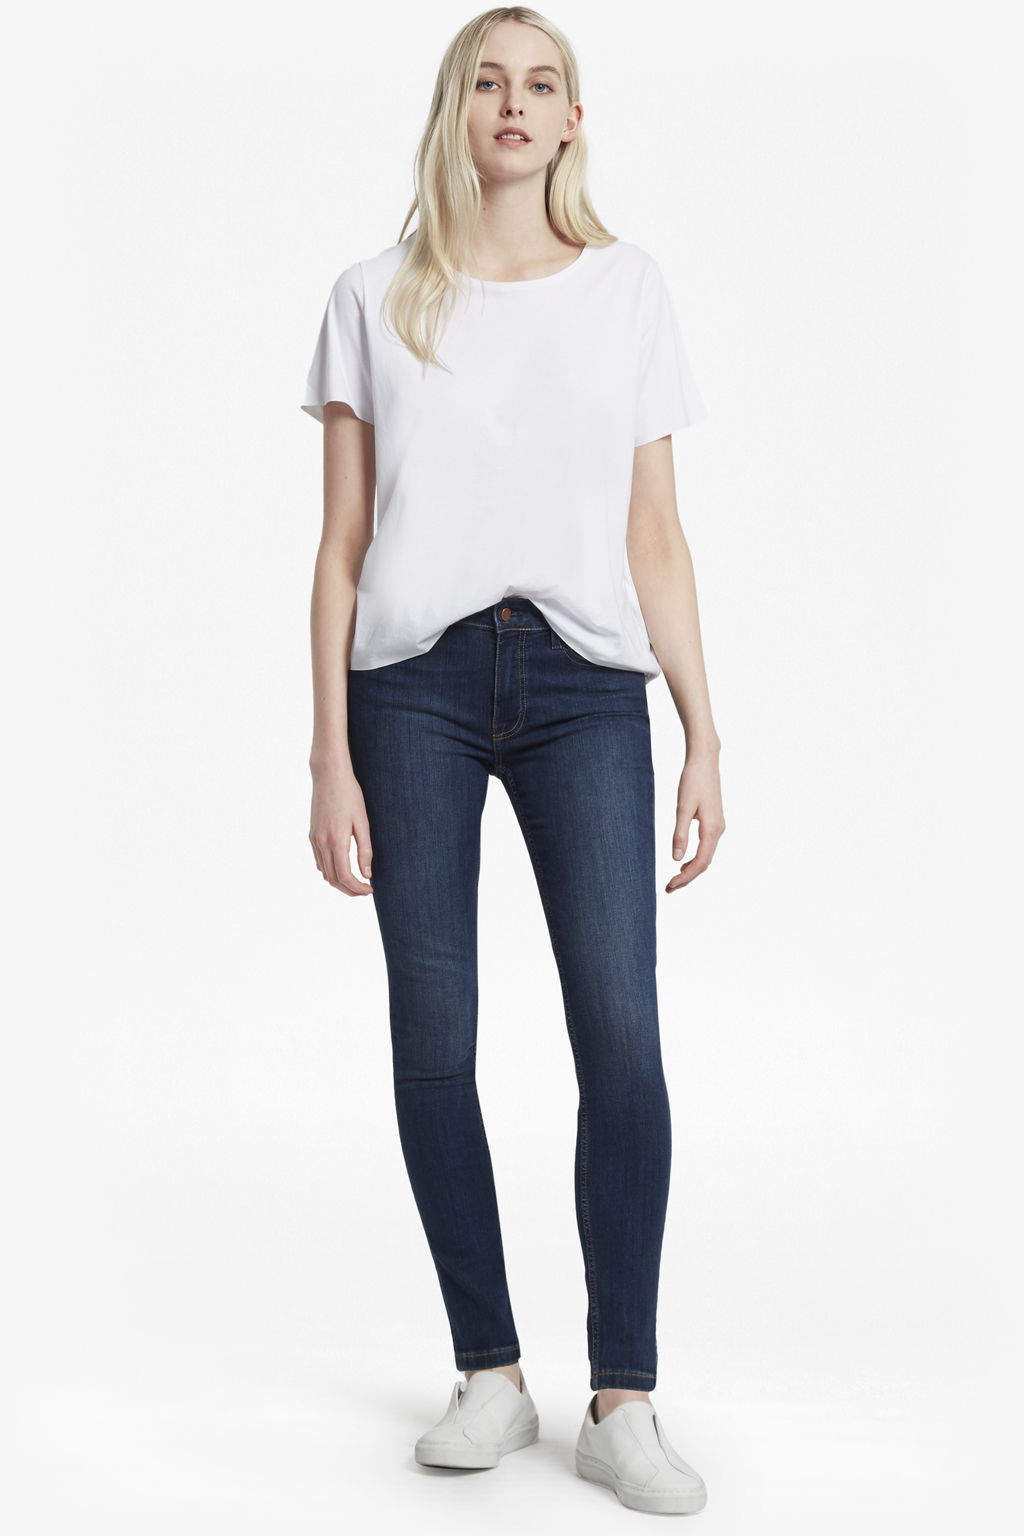 French Connection Rebound Coloured Skinny Jeans Discount Release Dates Cheap Sale Choice Store Sale 4I0eTrYMv